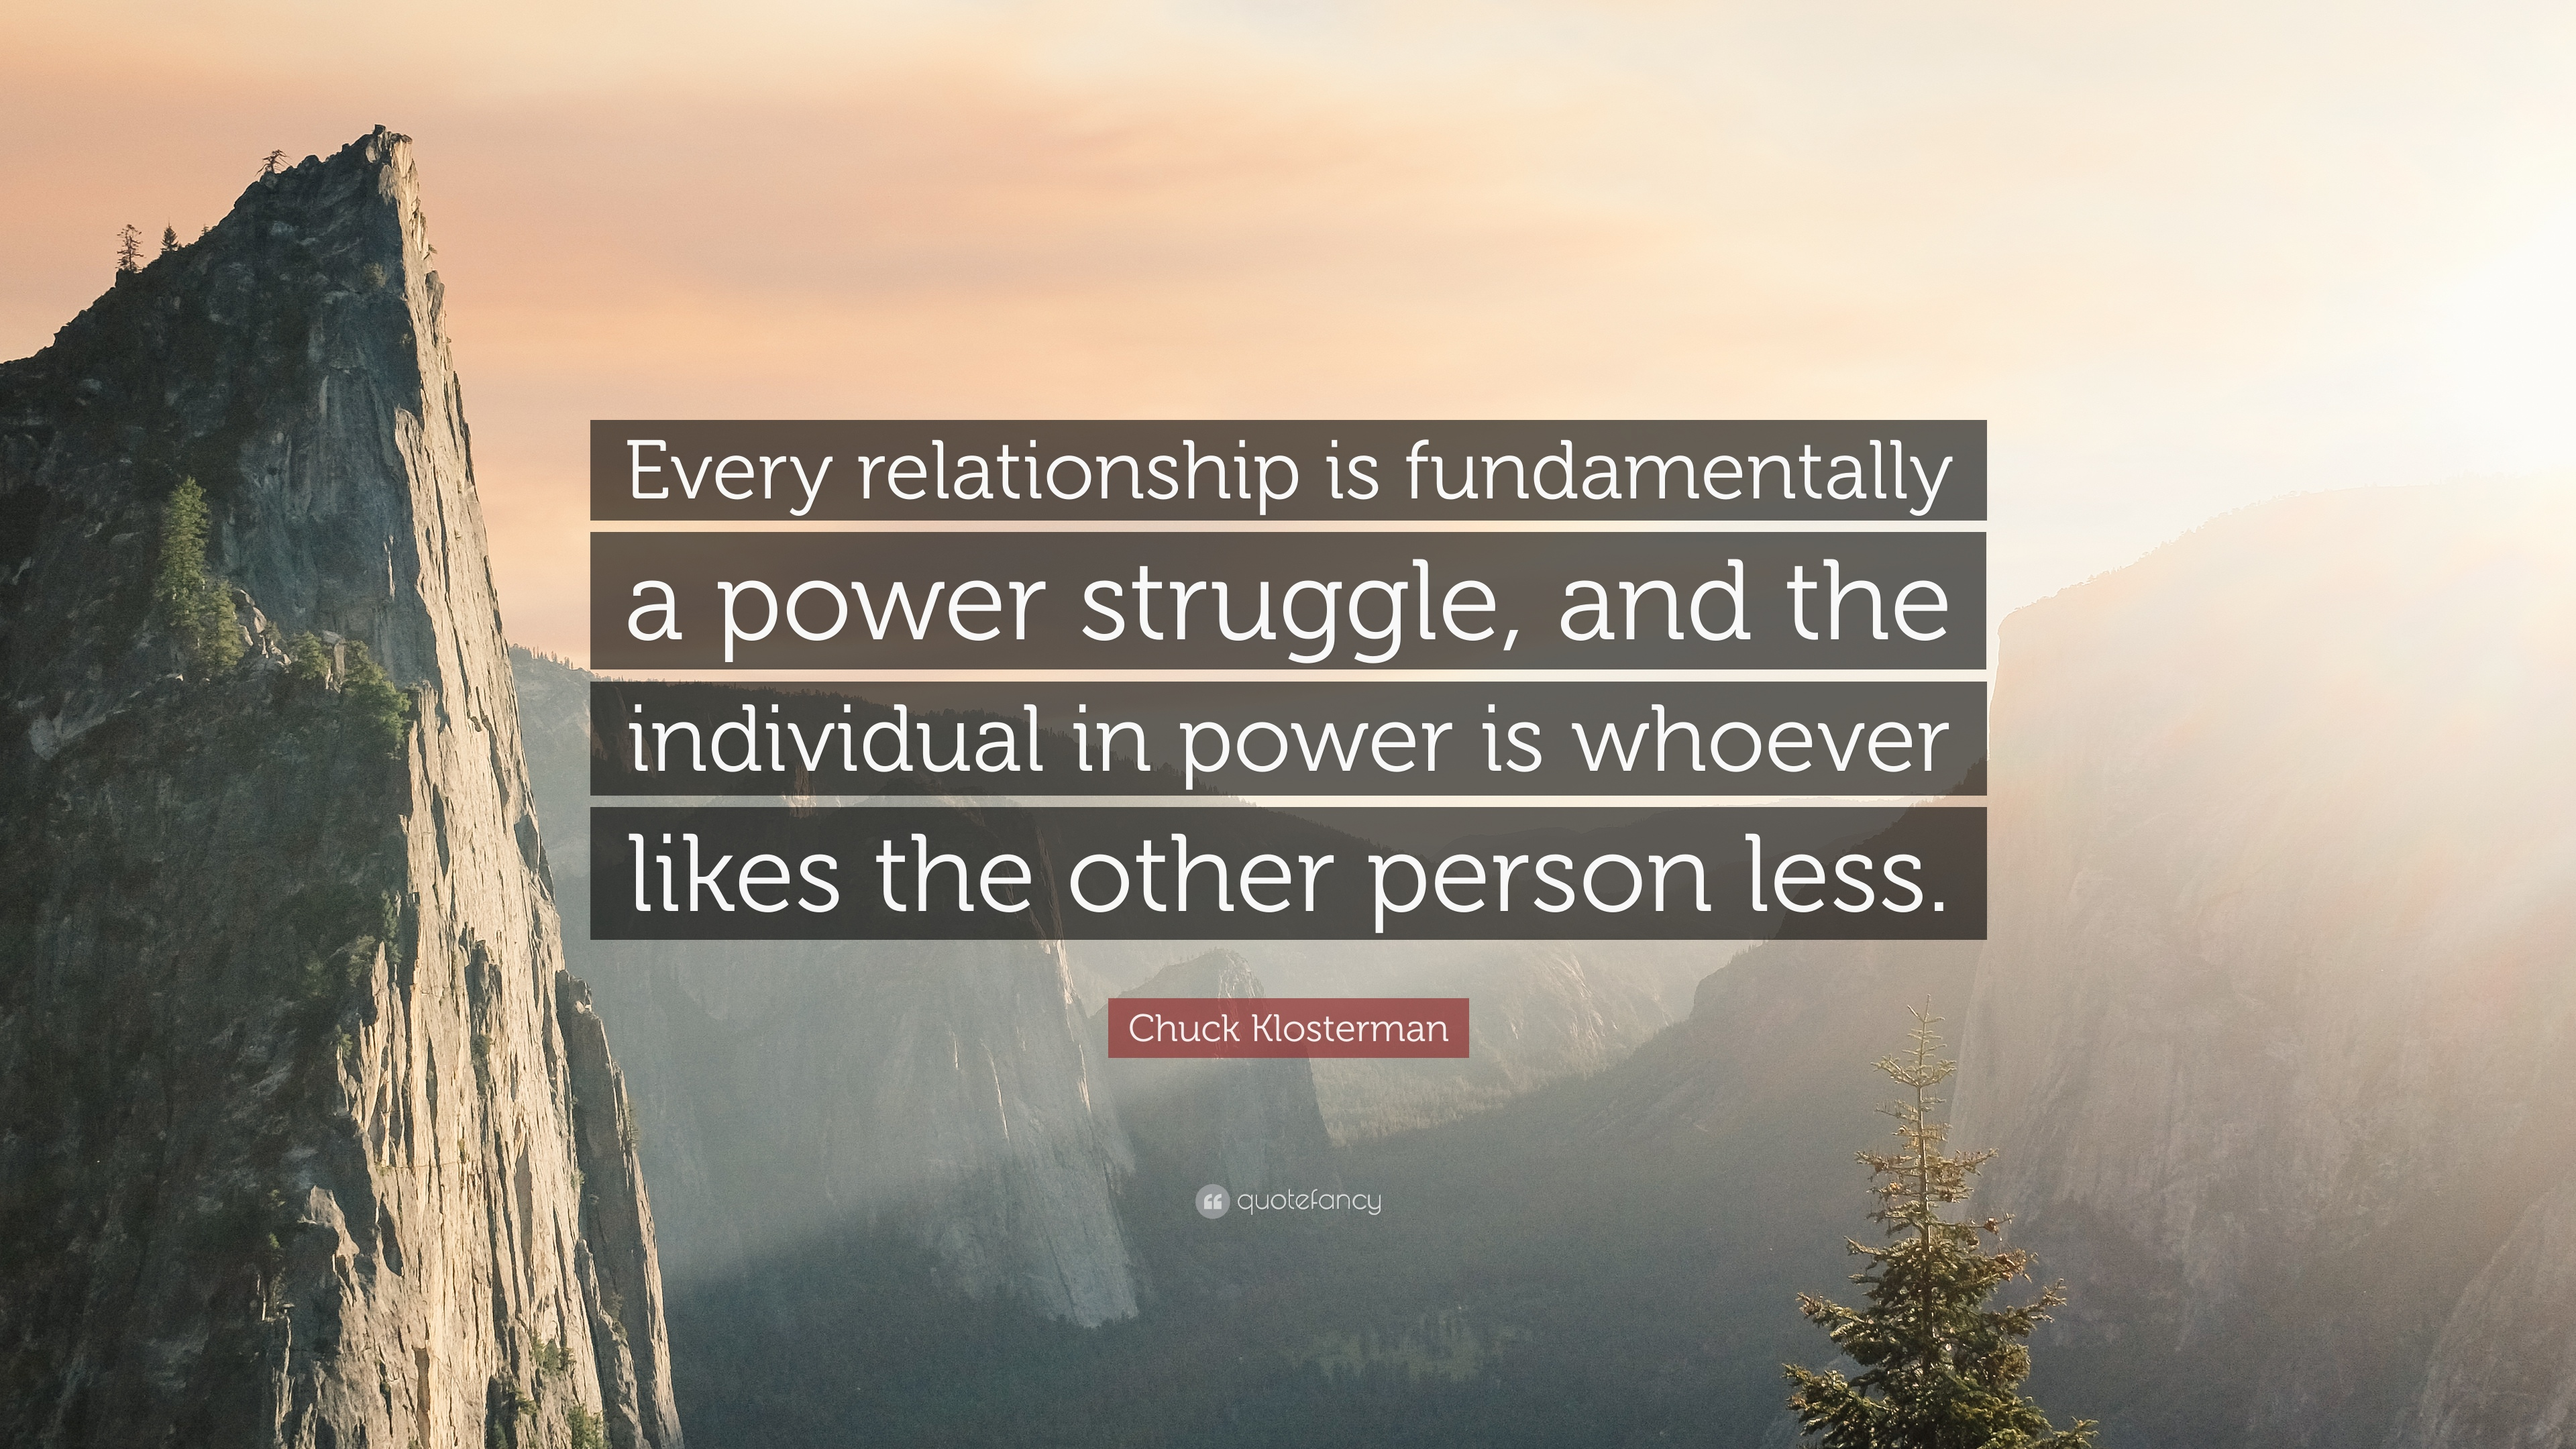 every relationship is fundamentally a power struggle